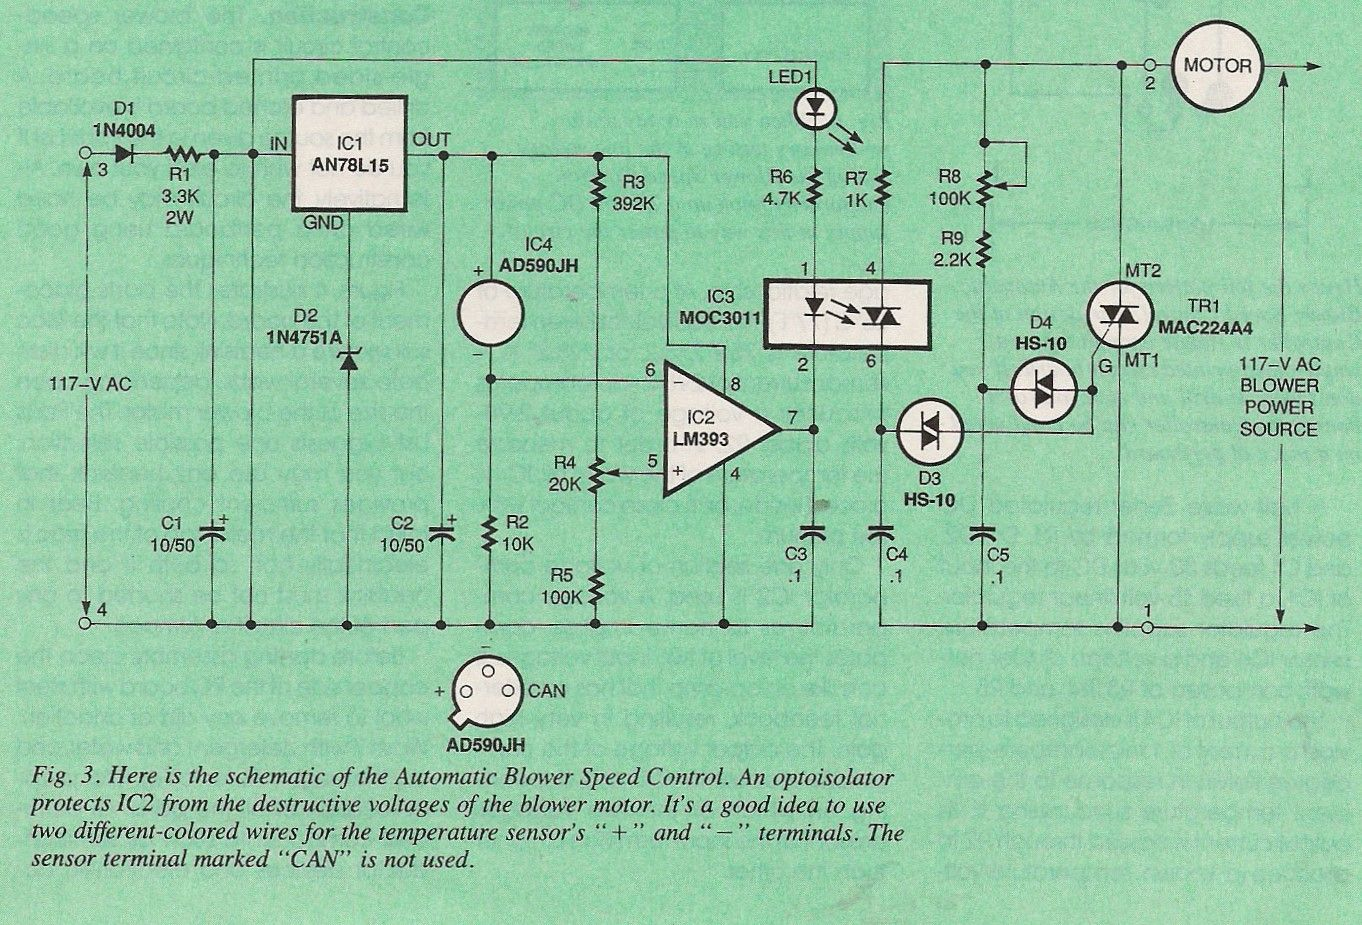 Pin By A Joe Petrucce On Electronic Projects Pinterest Most Simple Fm Transmitter Circuit Diagram Electronics Circuits